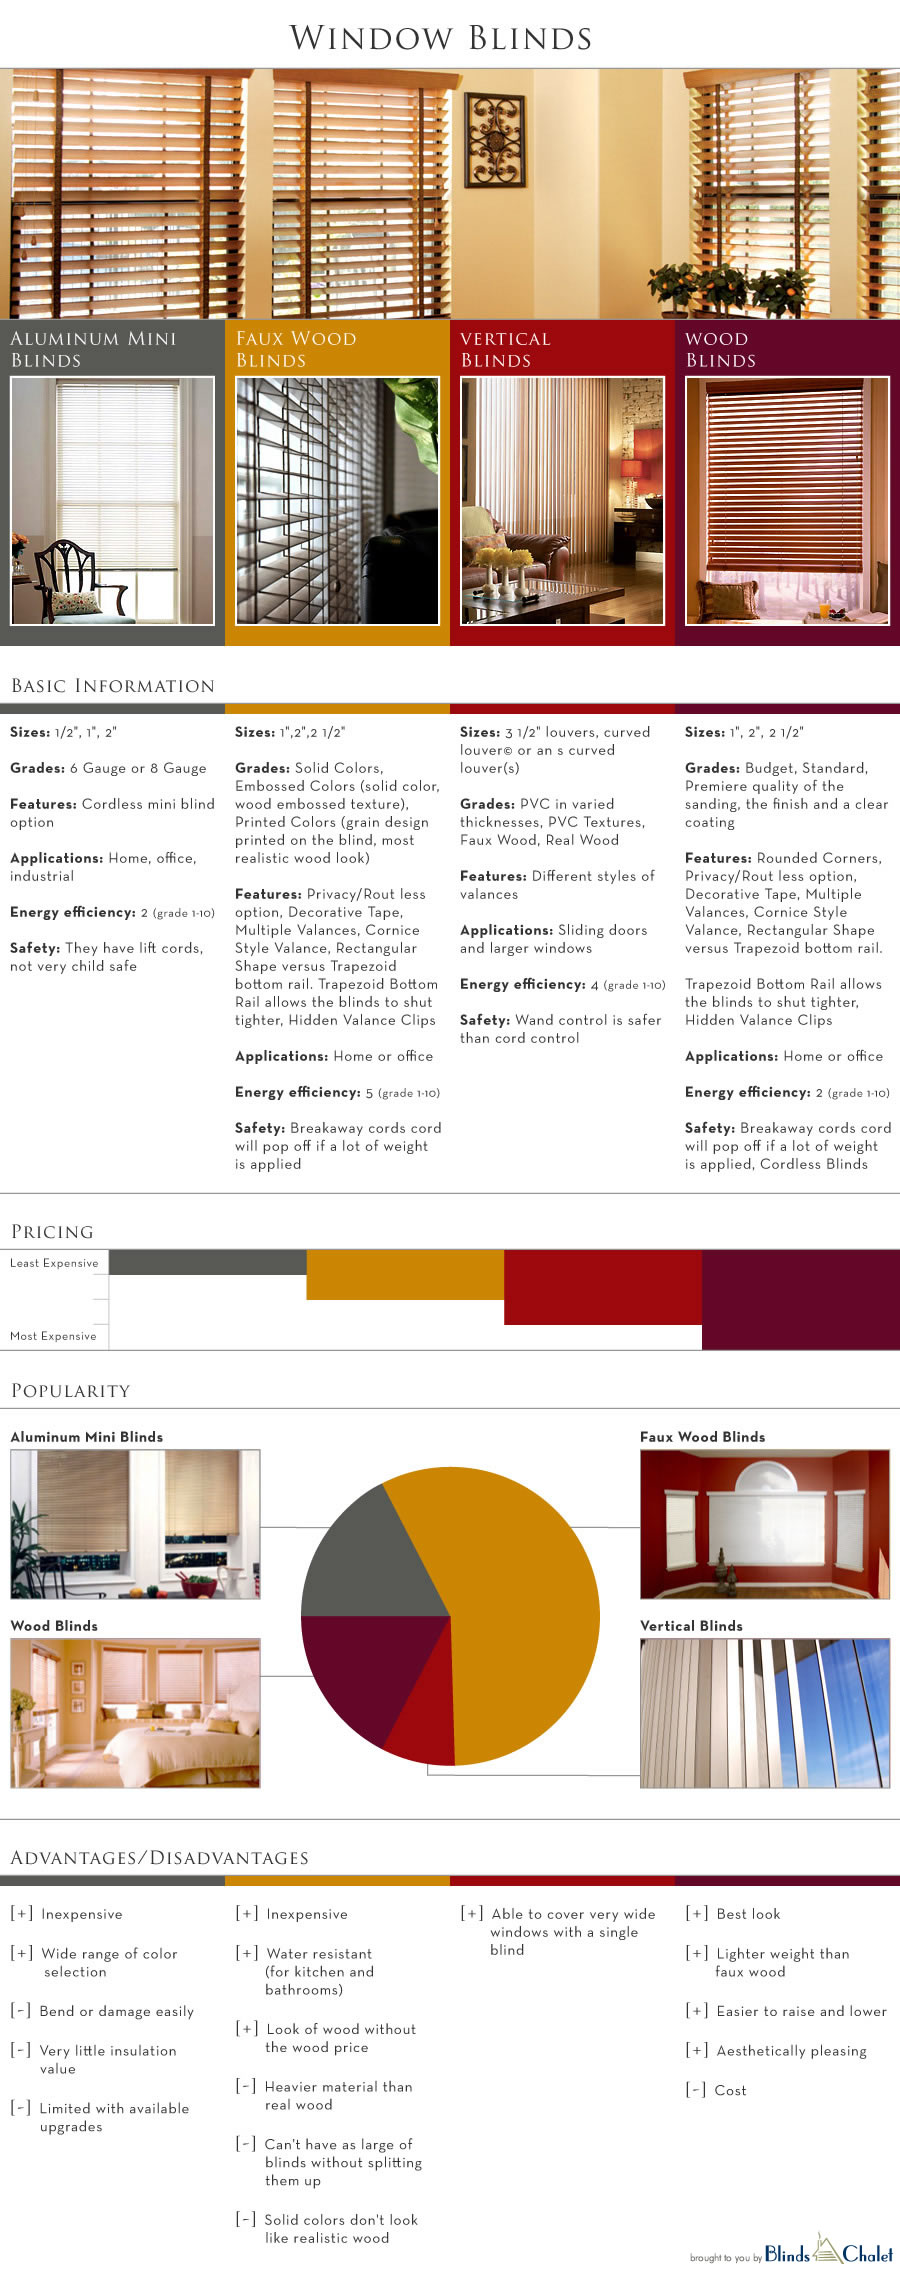 Window Blinds Infographic by Blinds Chalet